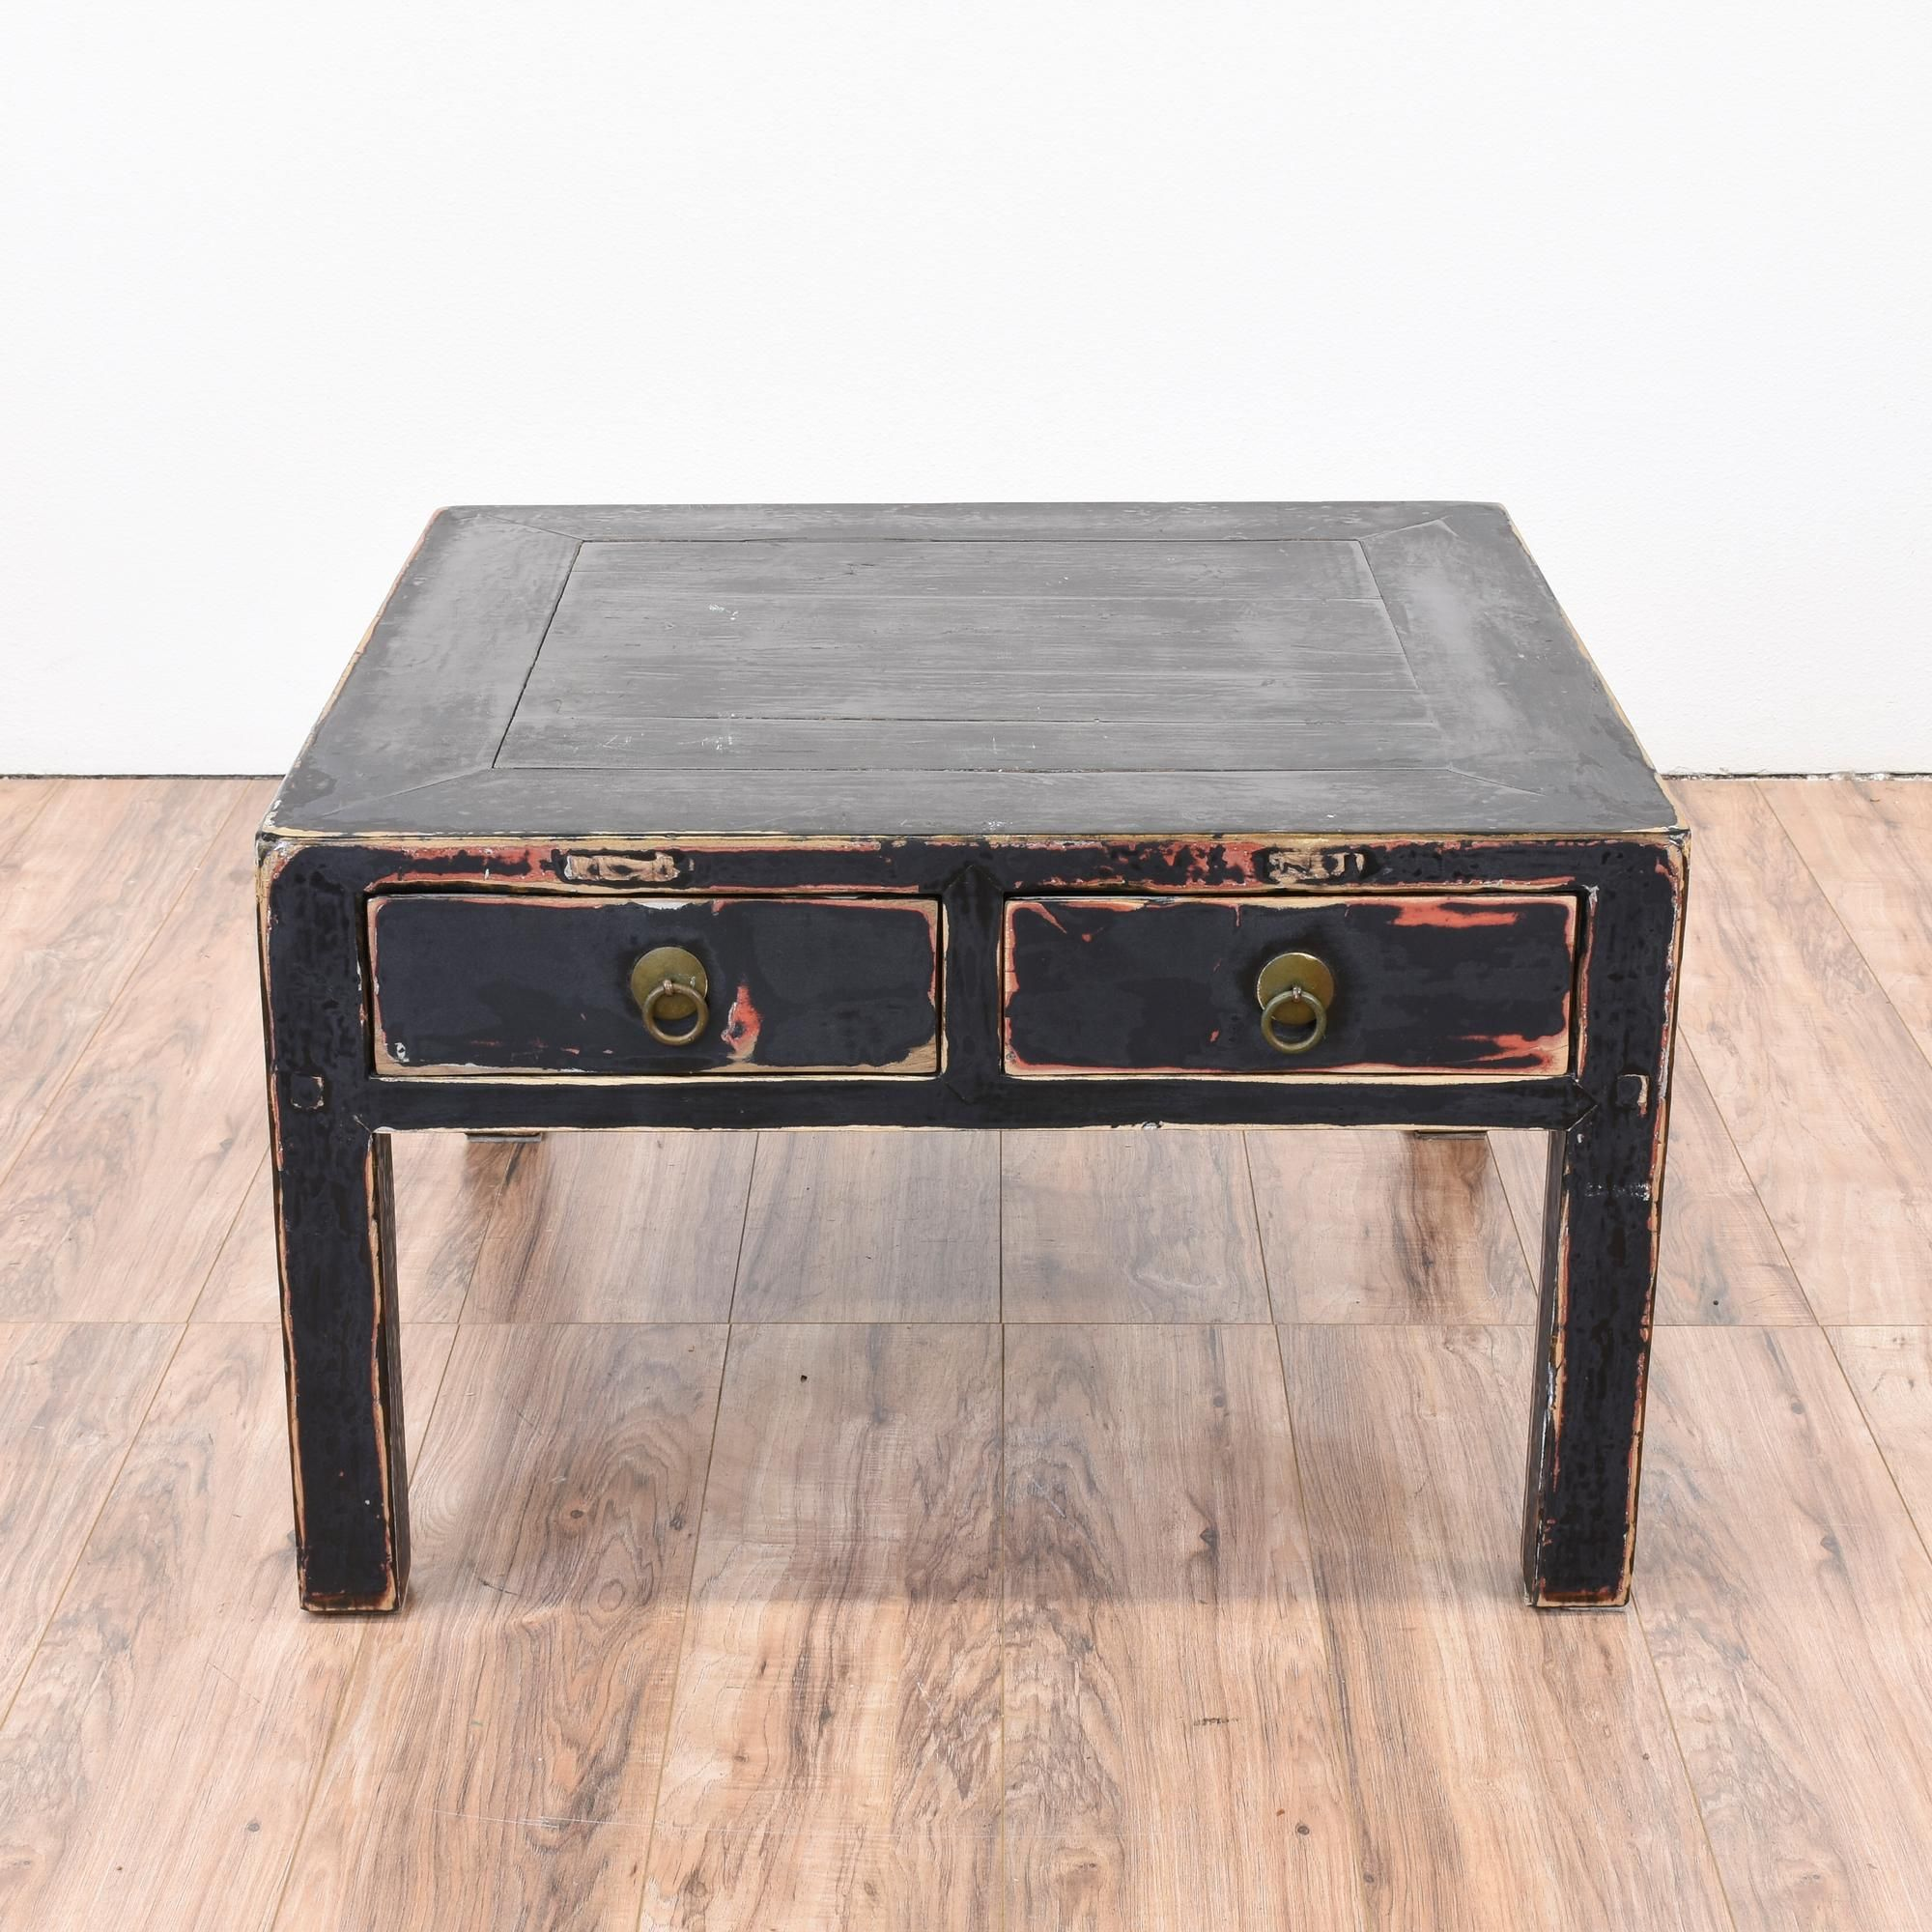 This Shabby Chic Coffee Table Is Featured In A Solid Wood Painted